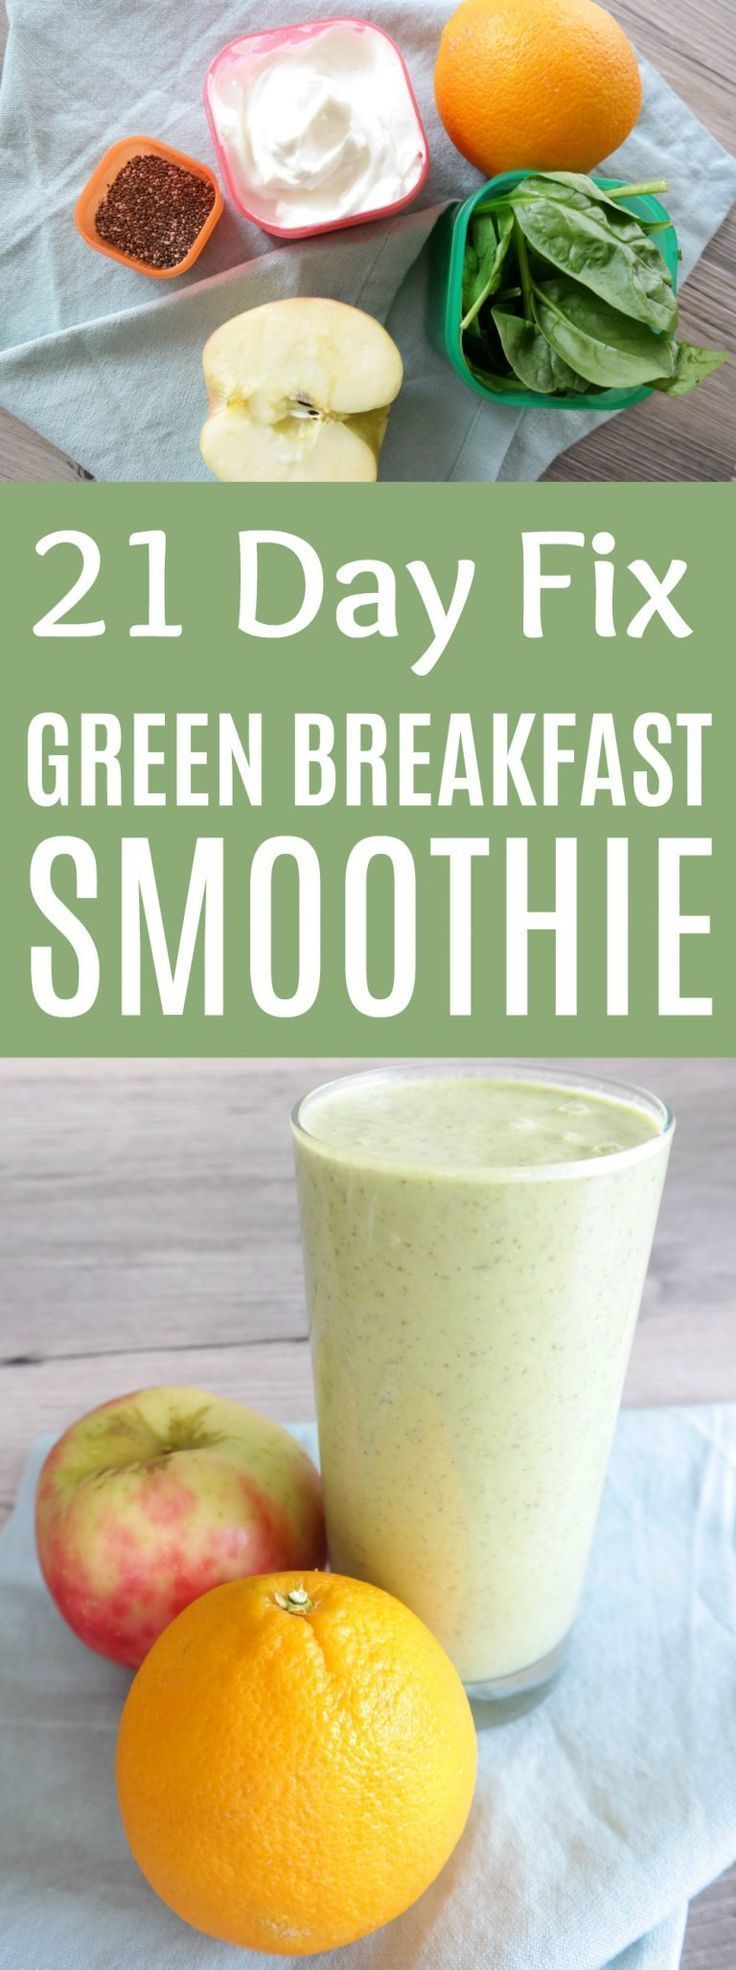 This 21 Day Fix Green Breakfast Smoothie is the perfect quick breakfast recipe! 21 Day Fix Smoothie | 21 Day Fix Breakfast Recipe | Green Smoothie Recipe